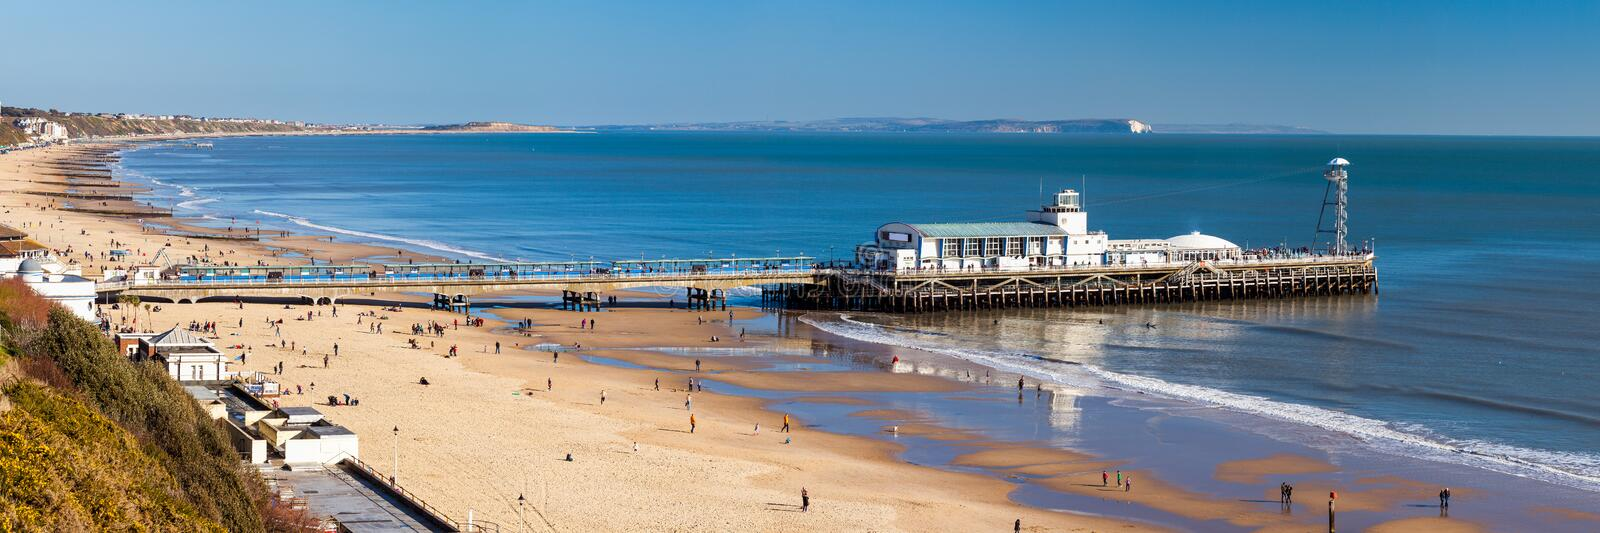 Bournemouth Pier Dorset photographie stock